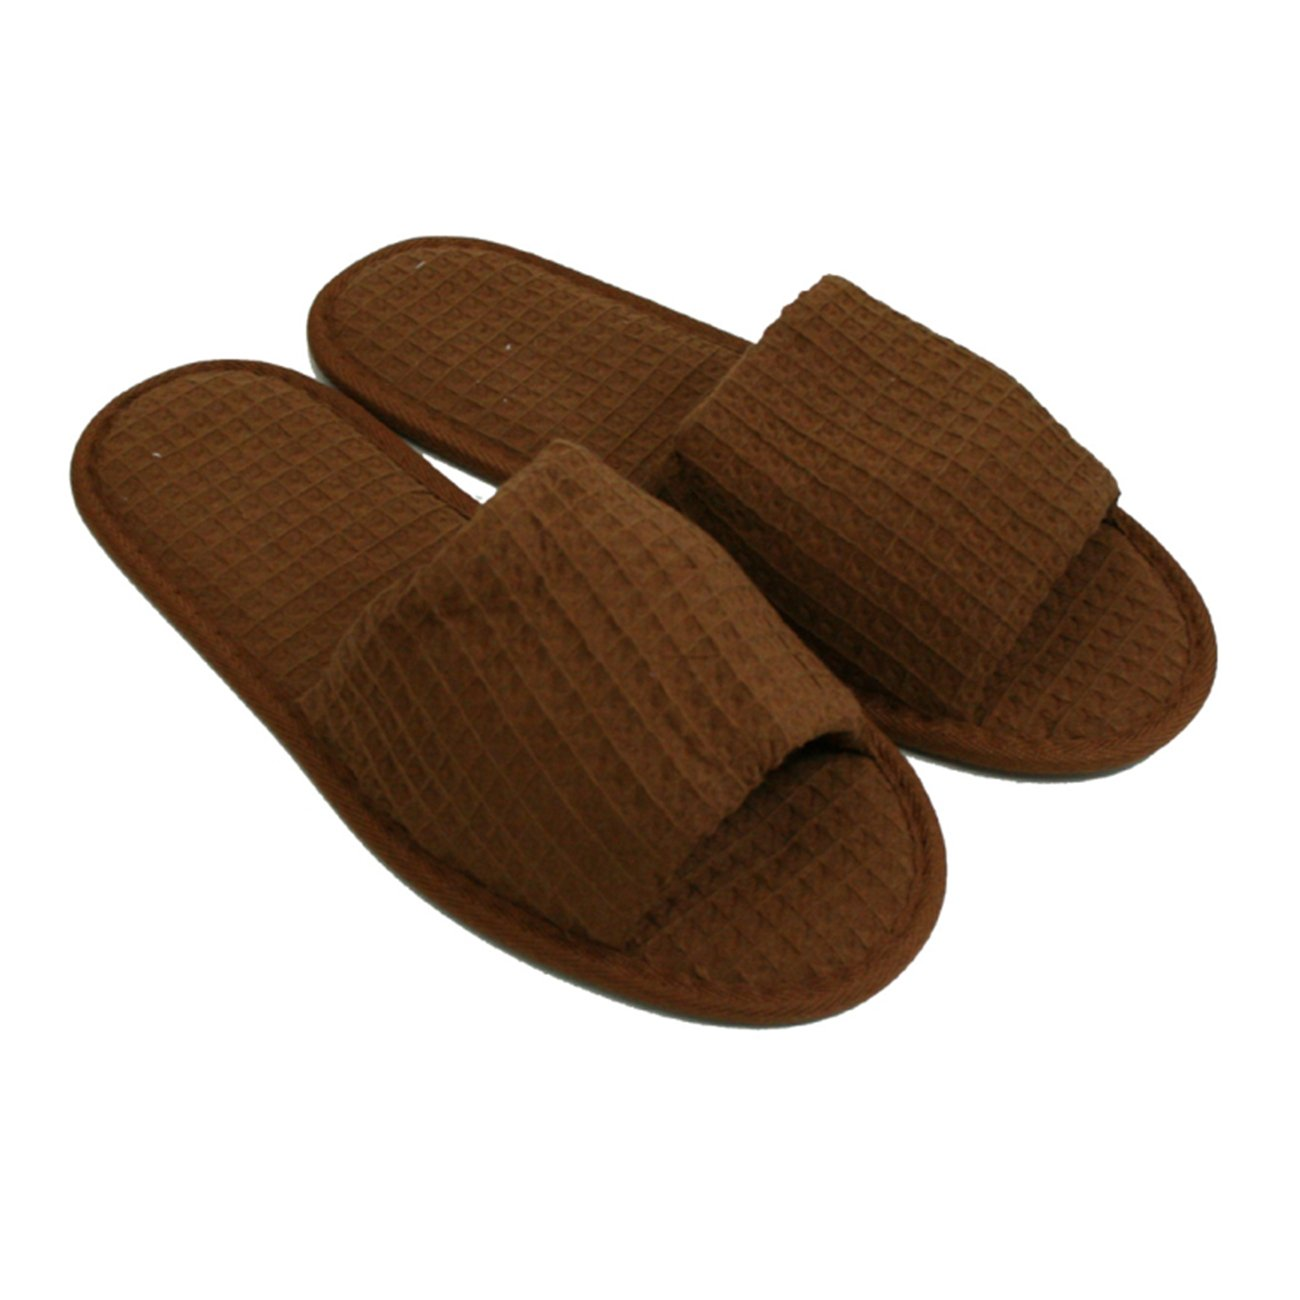 Waffle Open Toe Adult Slippers Cloth Spa Hotel Unisex Slippers for Women and Men Wholesale 100 Pcs Dark Chocolate